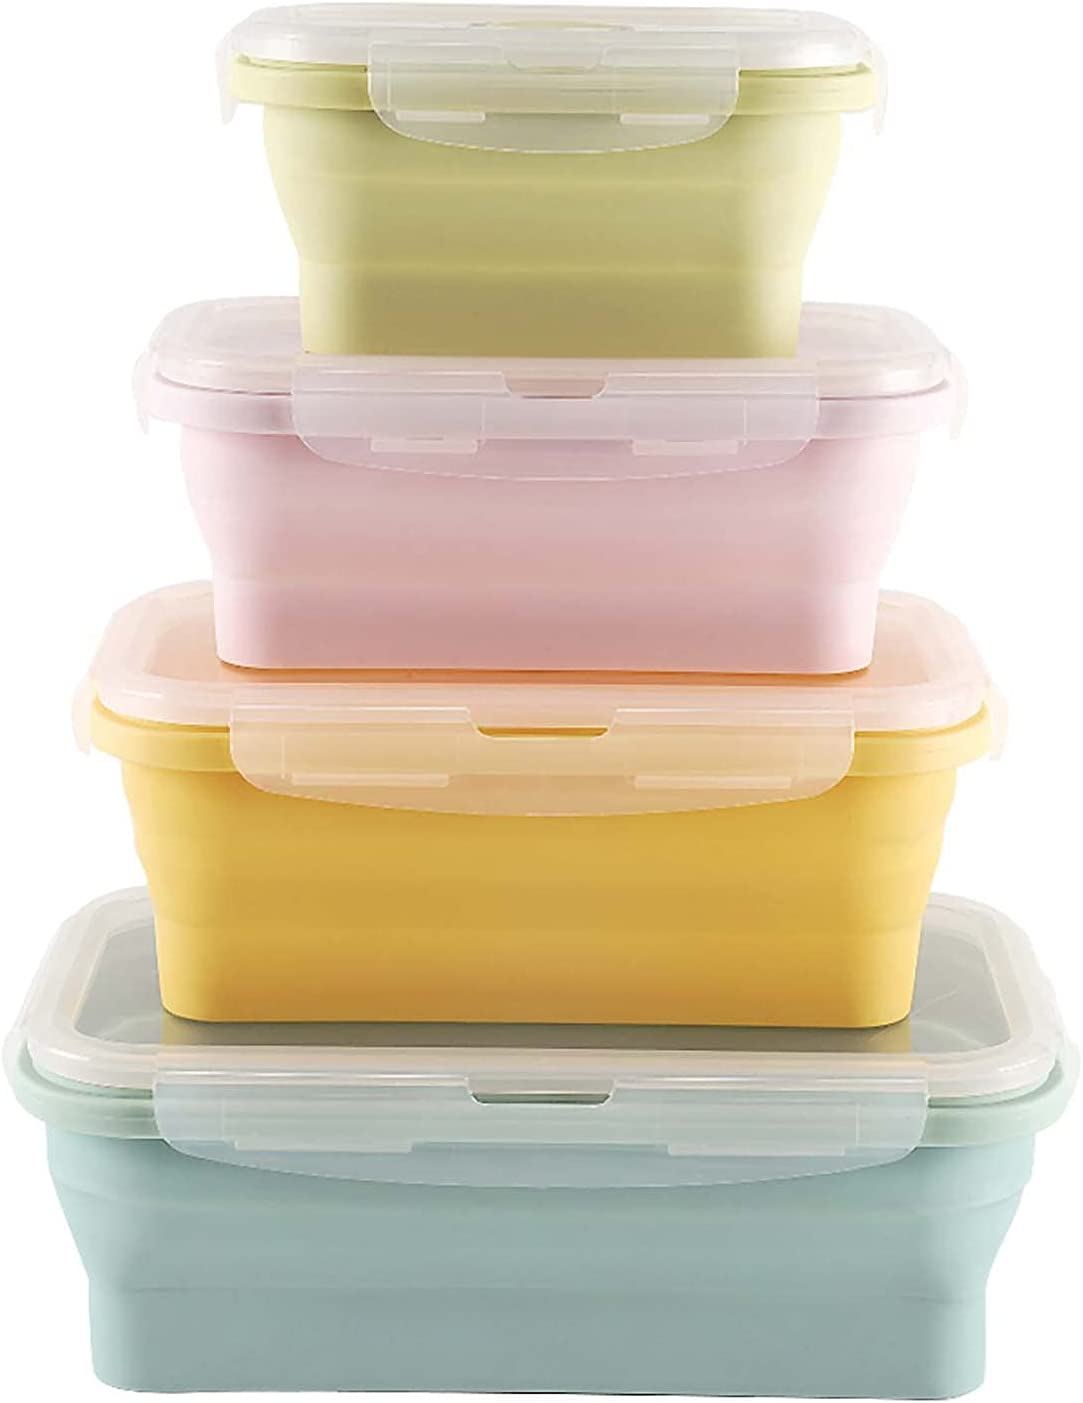 GUOYAJF 5 ☆ very popular Max 41% OFF 4 Pack Collapsible Plastic Storage Food with Containers